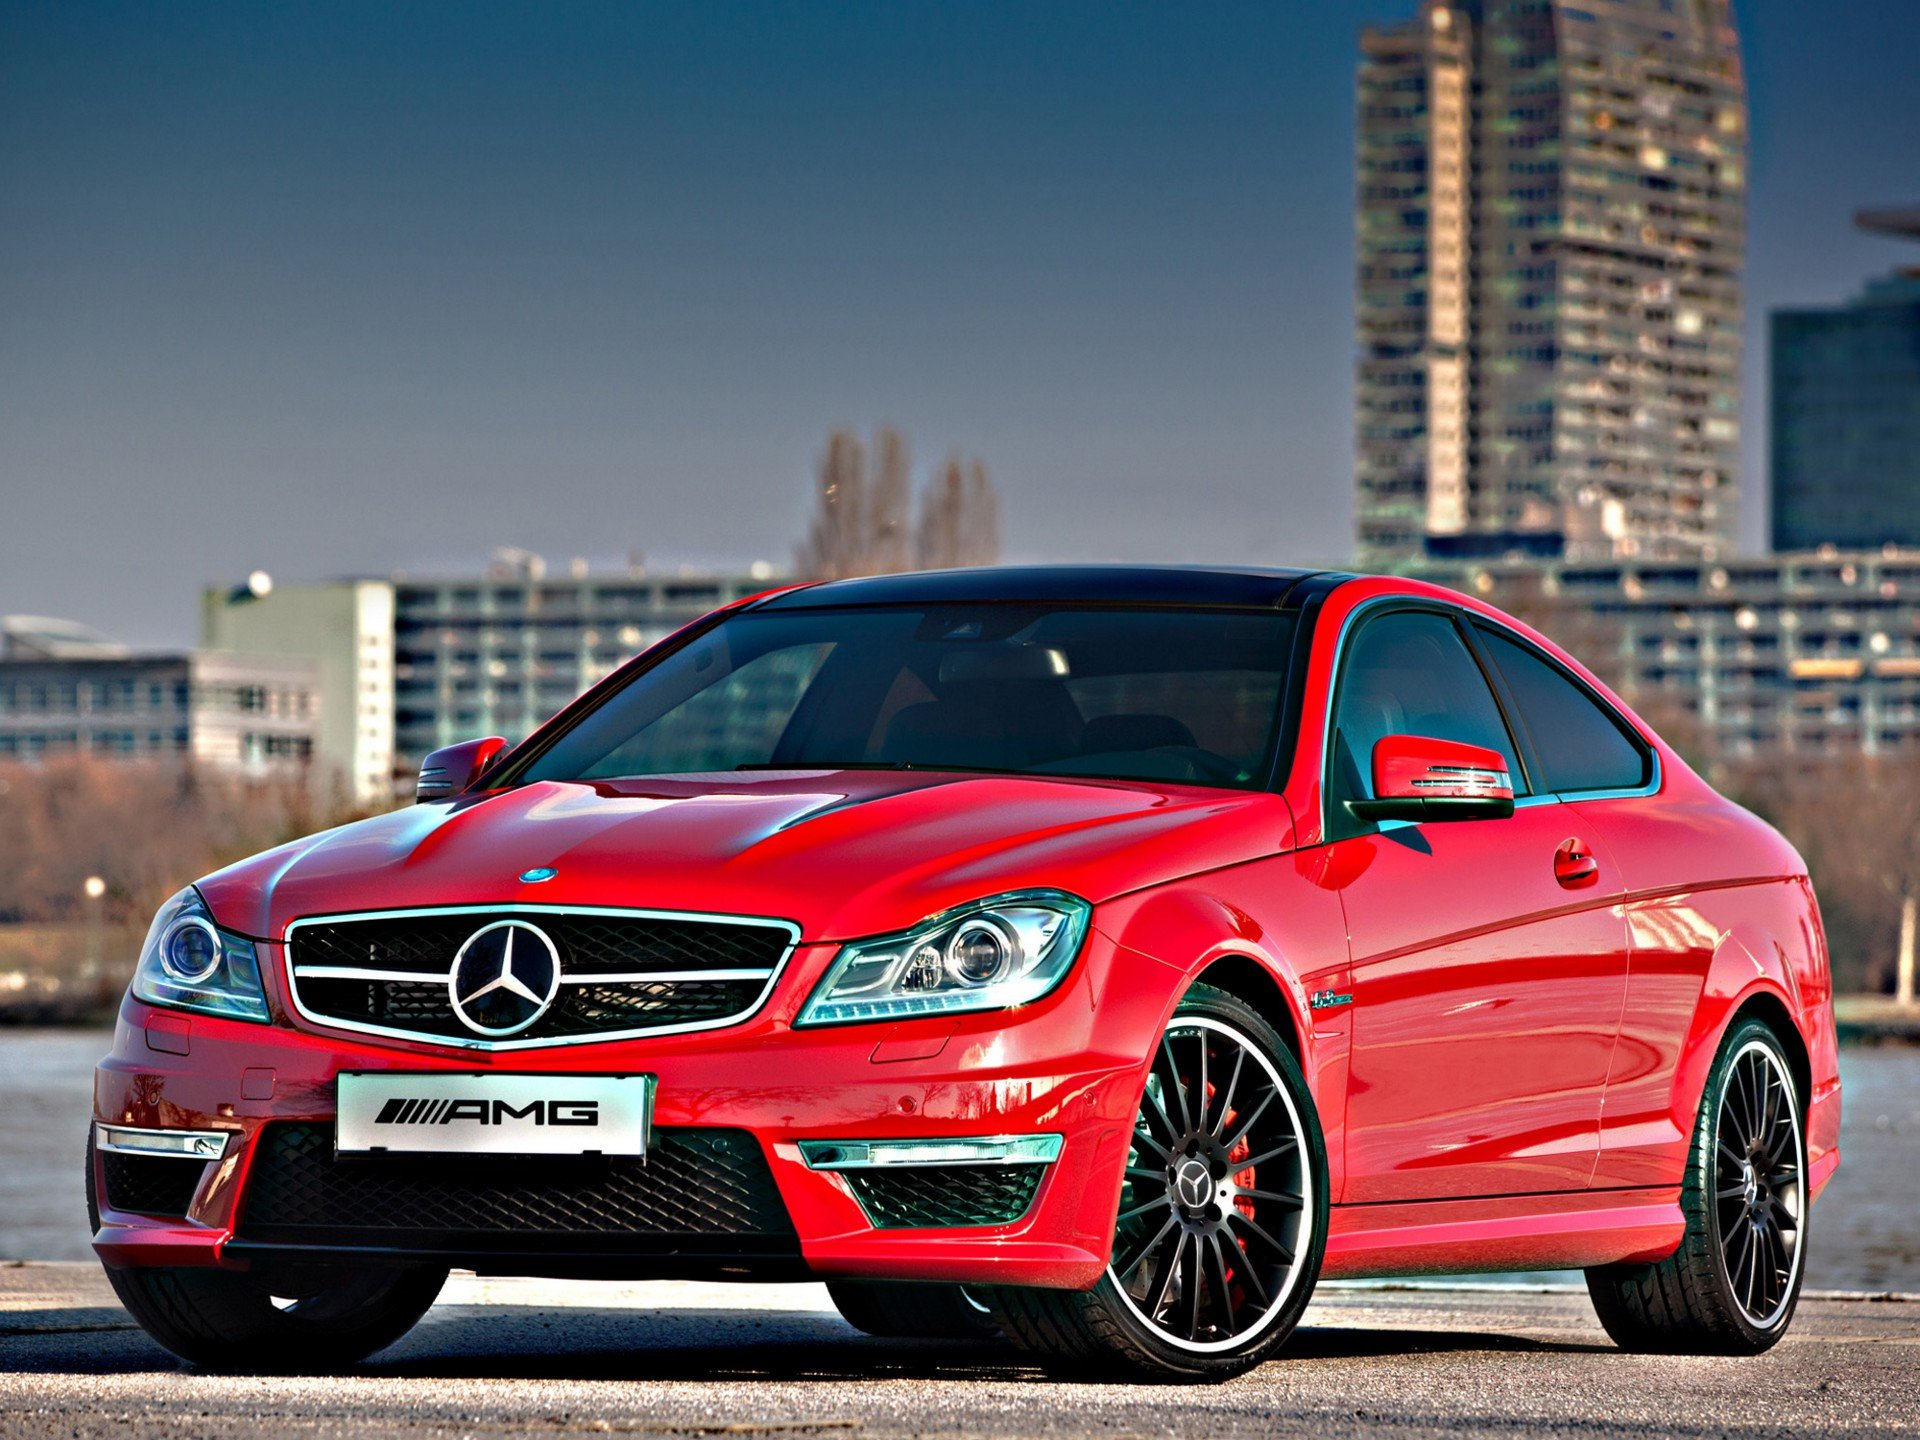 Mercedes benz c63 amg coupe austria edition c204 cars 2012 wallpaper 1920x1440 729569 - 2012 mercedes c63 amg coupe ...